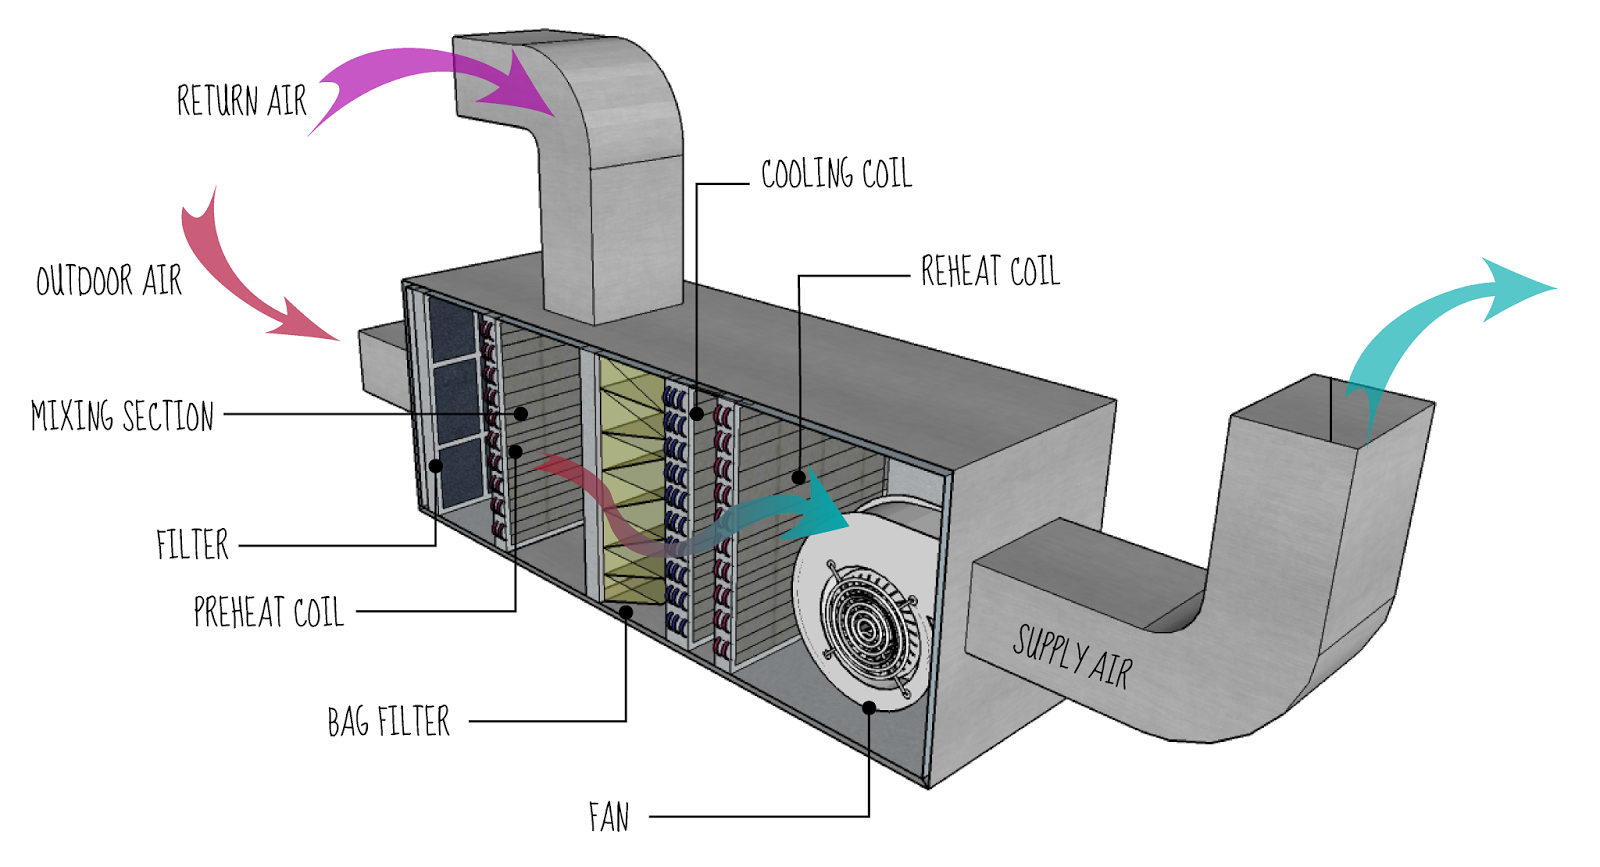 Basic Principles Of A Hvac System